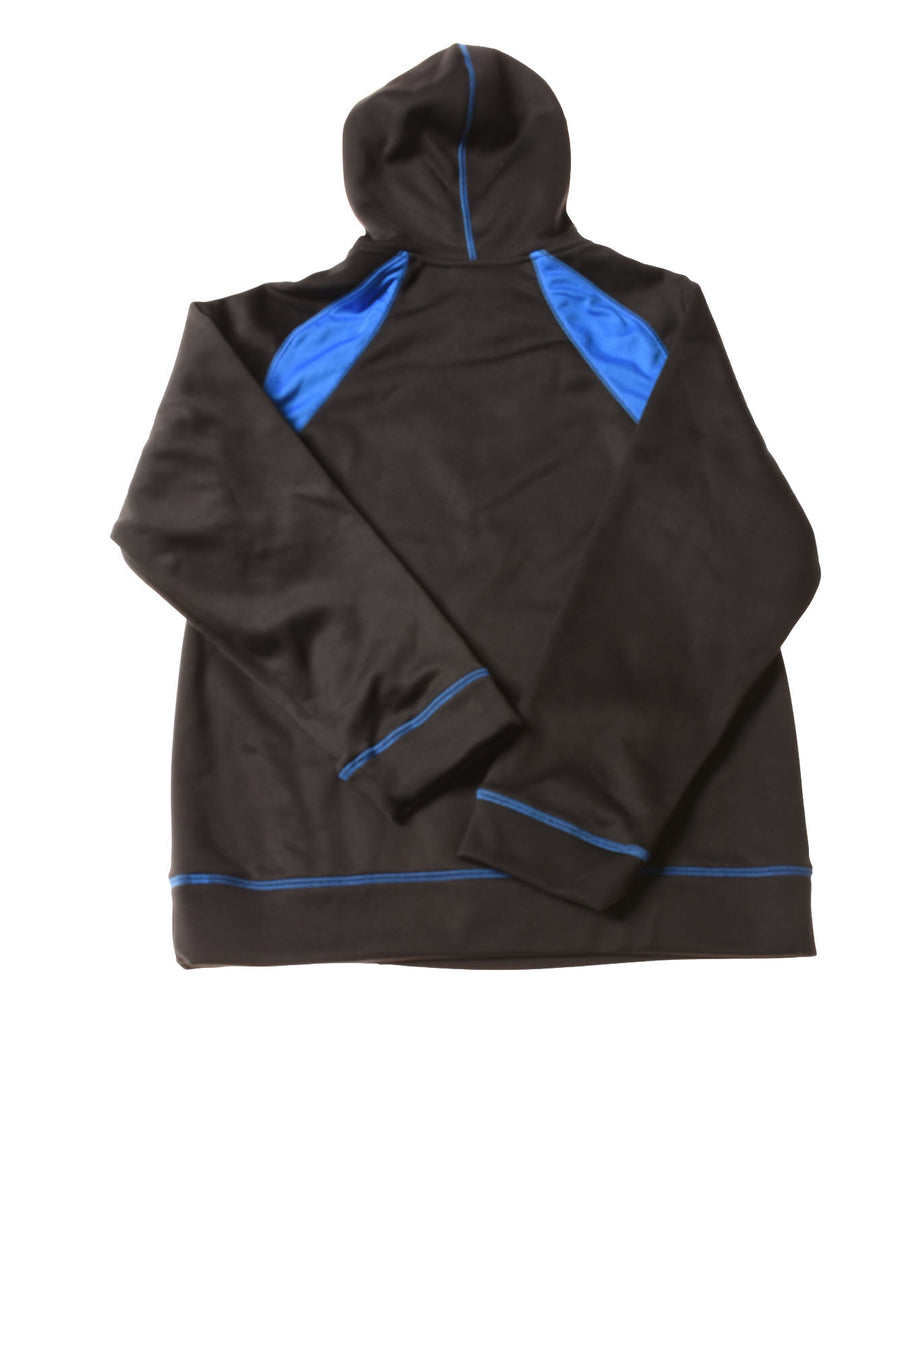 USED Nike Boy's Hoodie Large Black & Blue